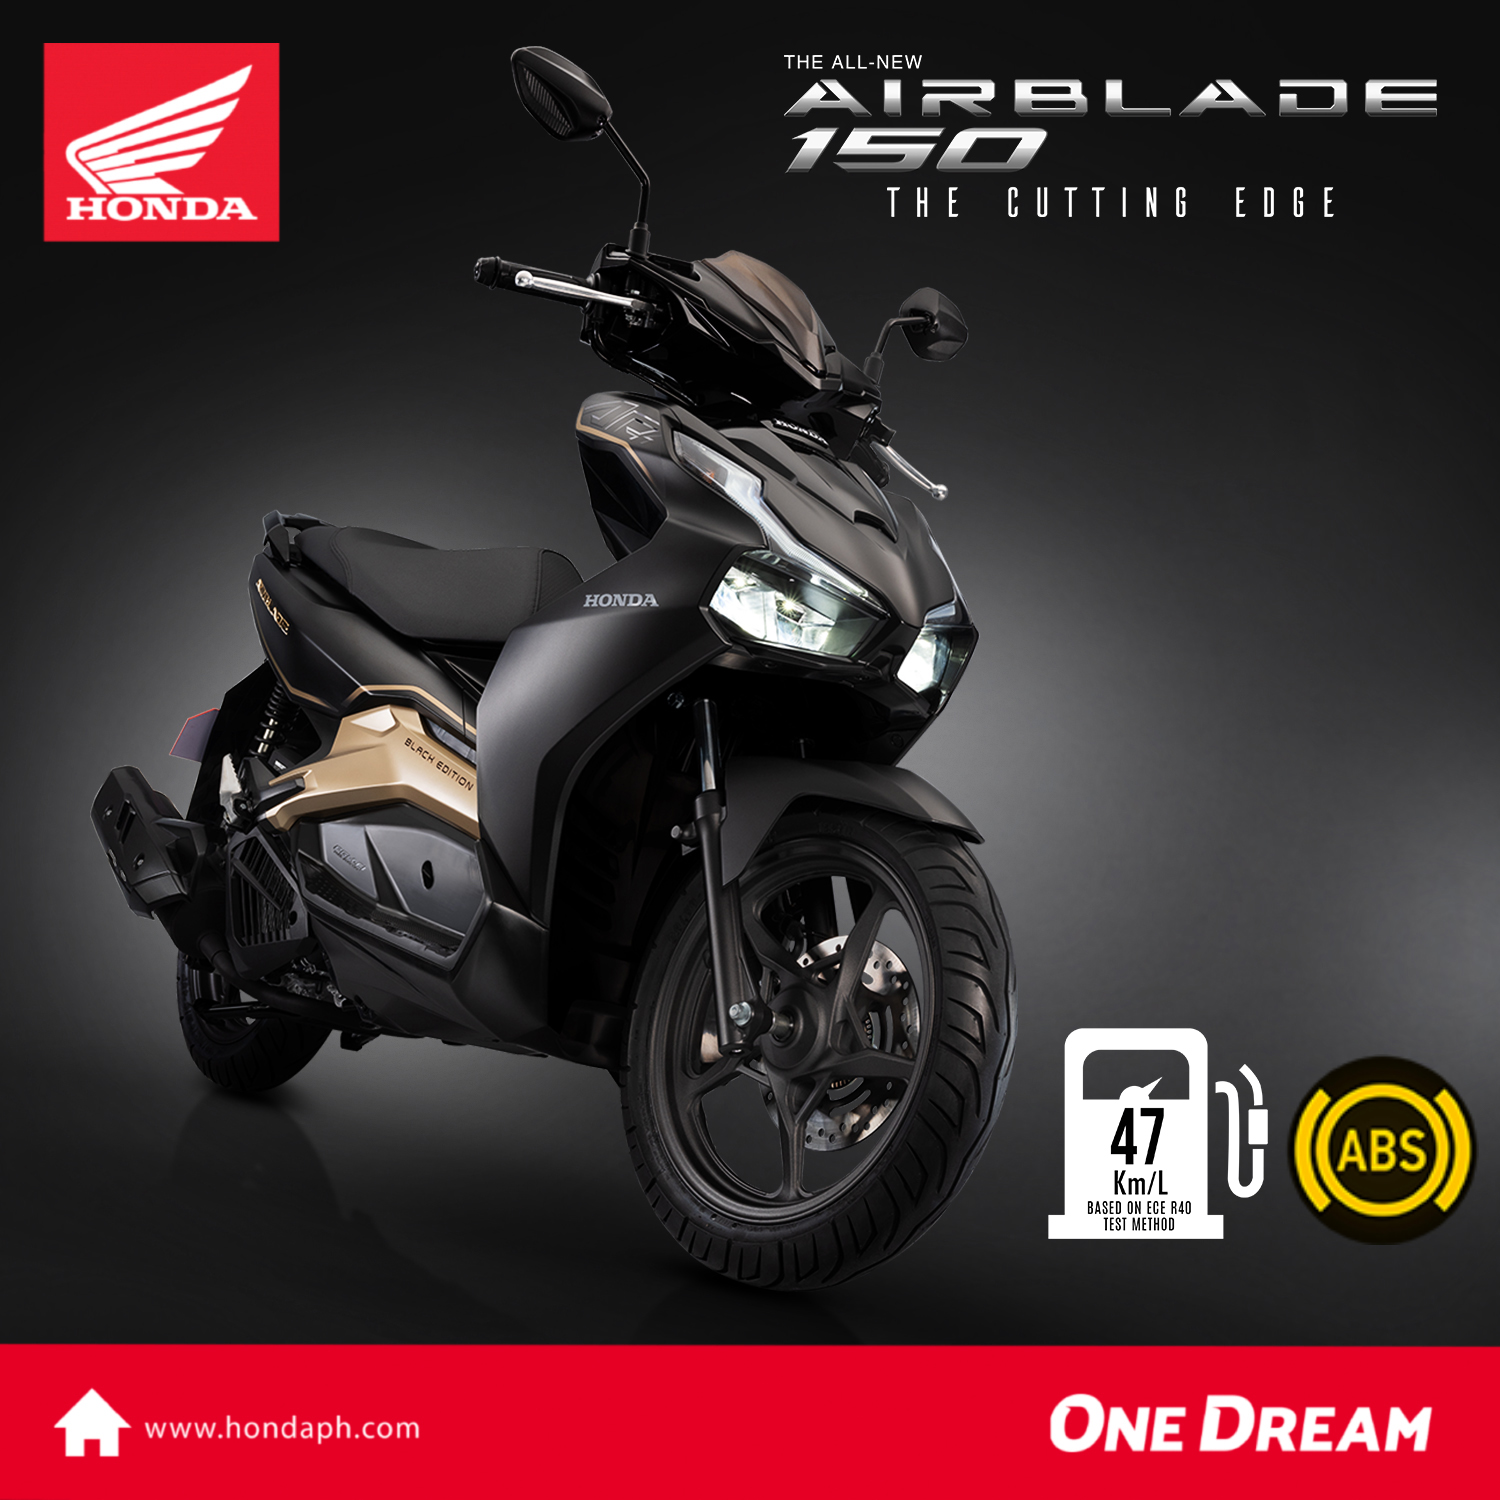 Features that will make your motorcycle riding experience more comfortable